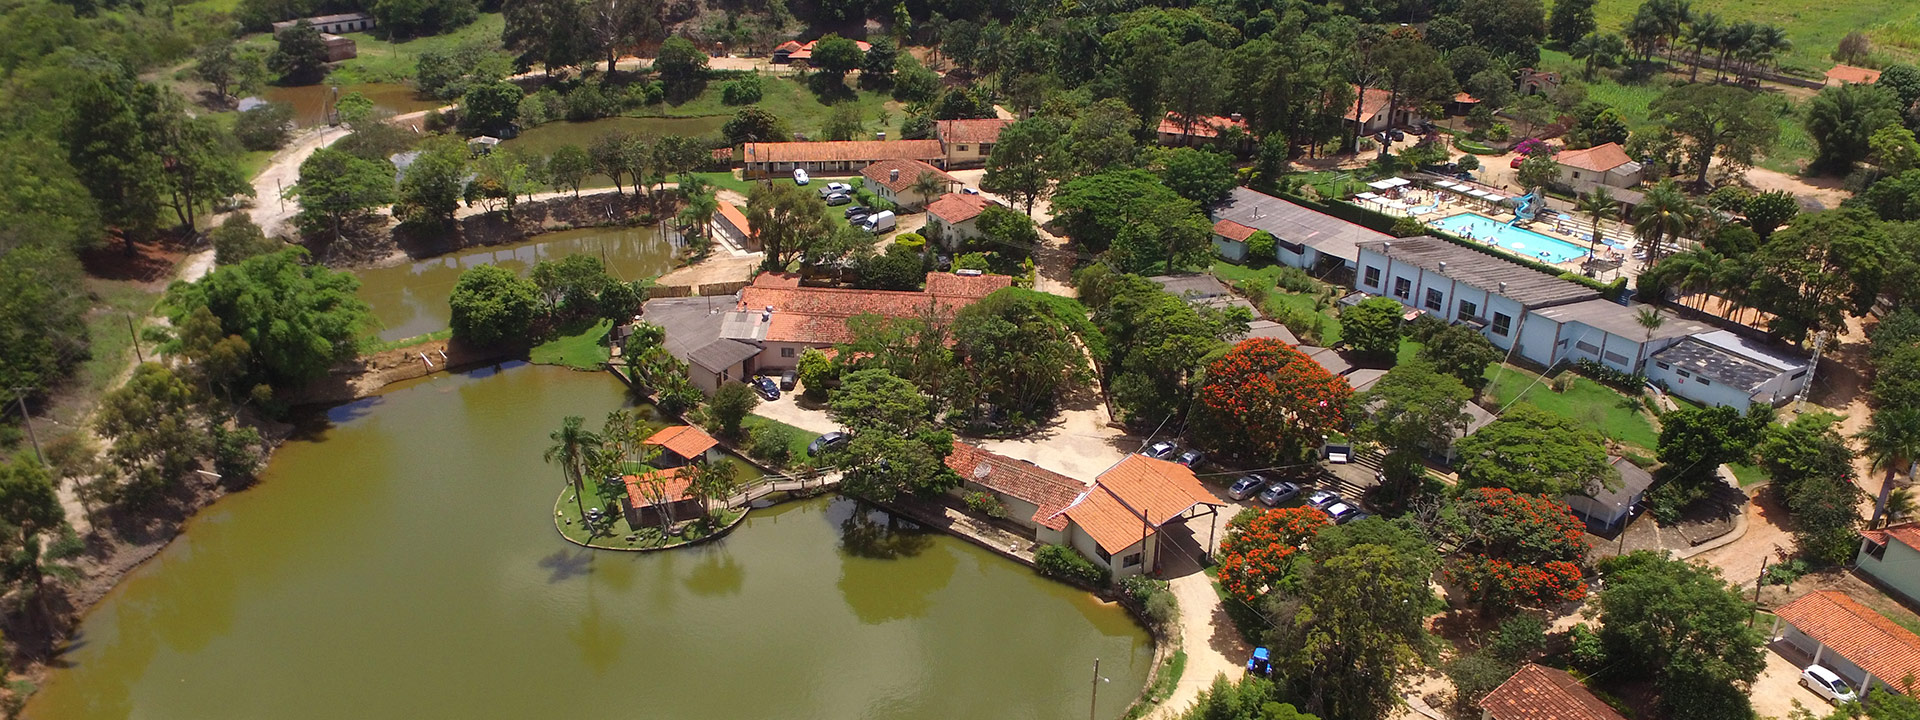 Finad0s  Big Valley Hotel Fazenda